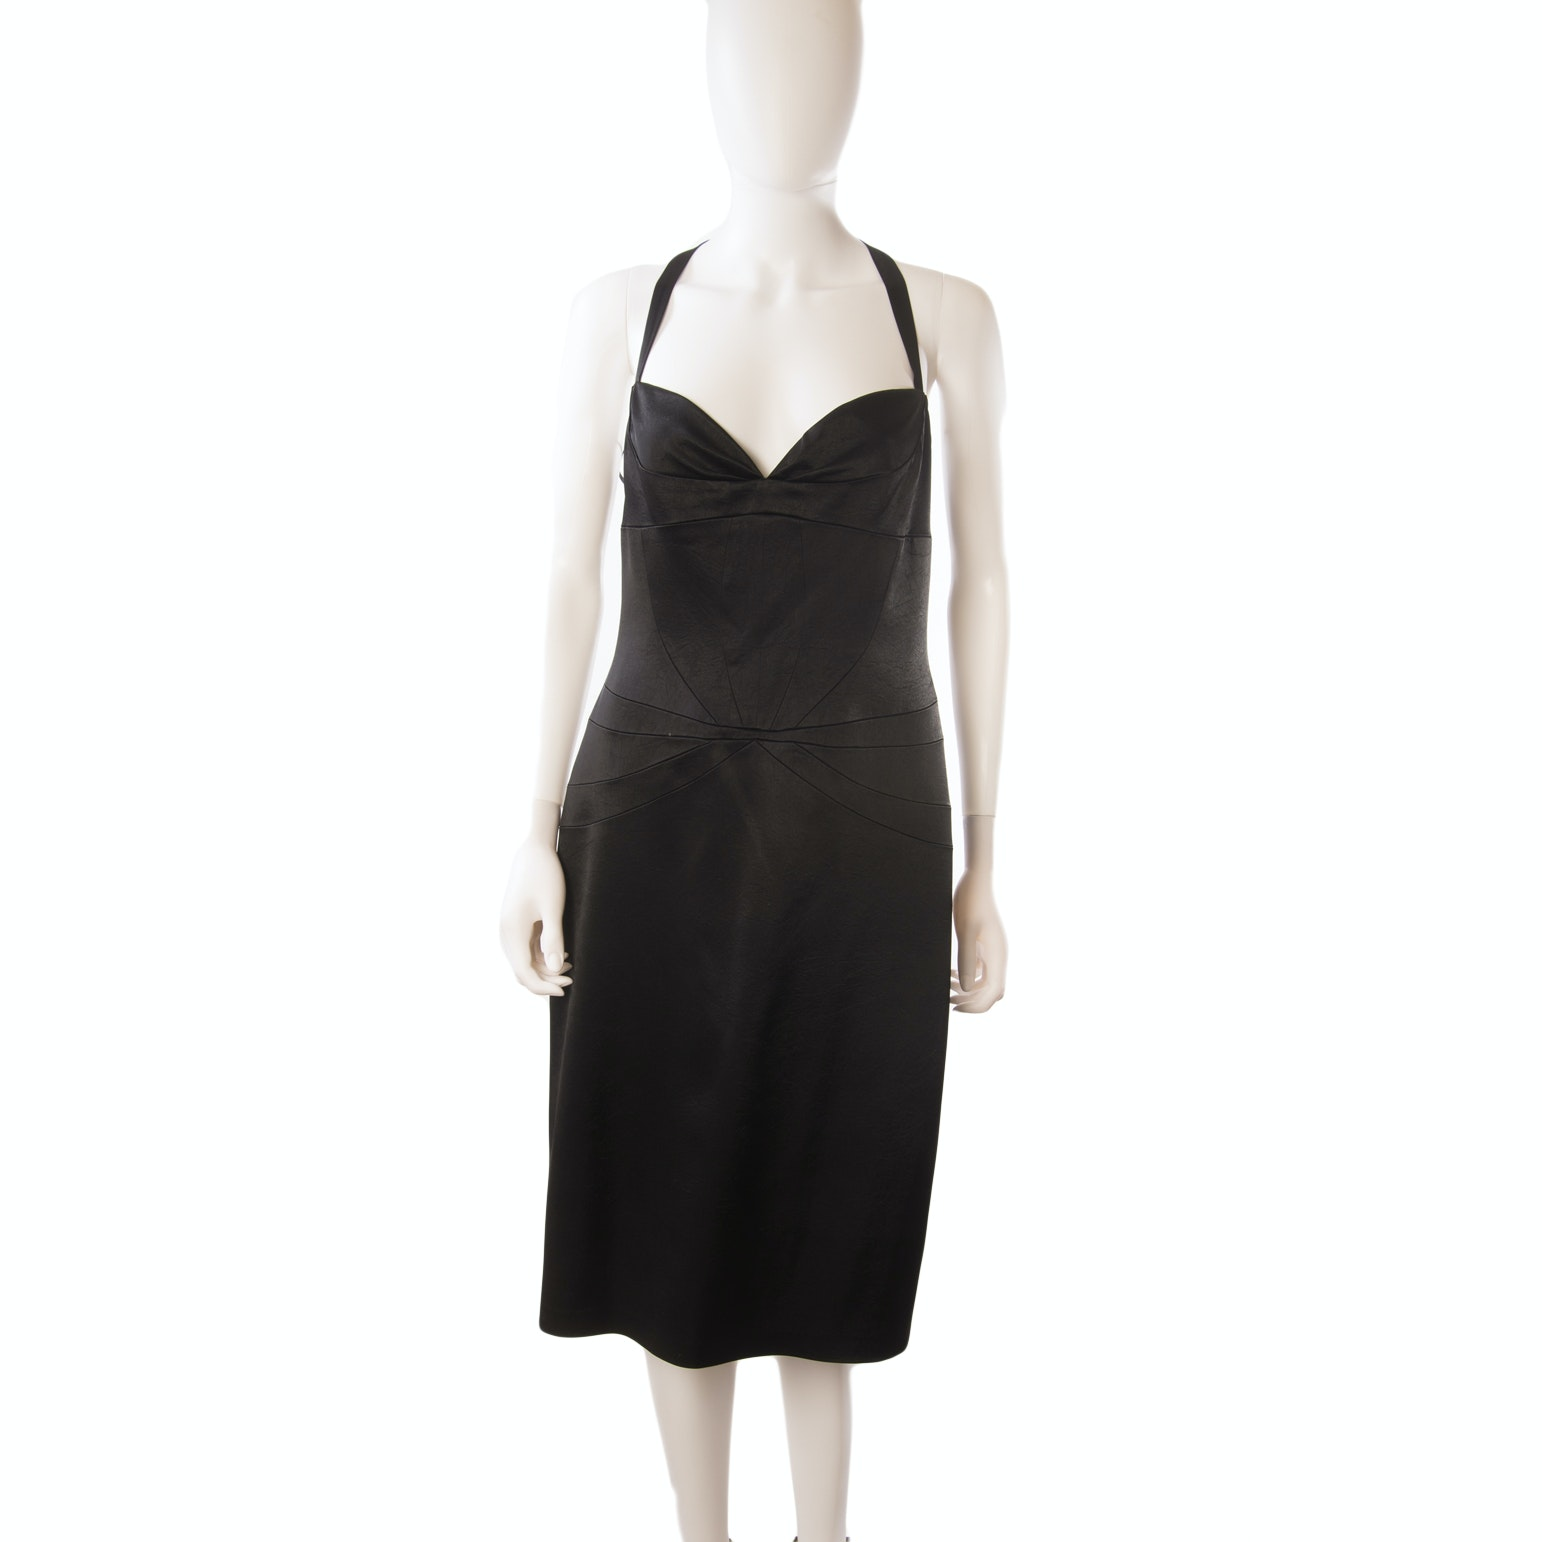 Laundry by Design Black Sleeveless Cocktail Dress